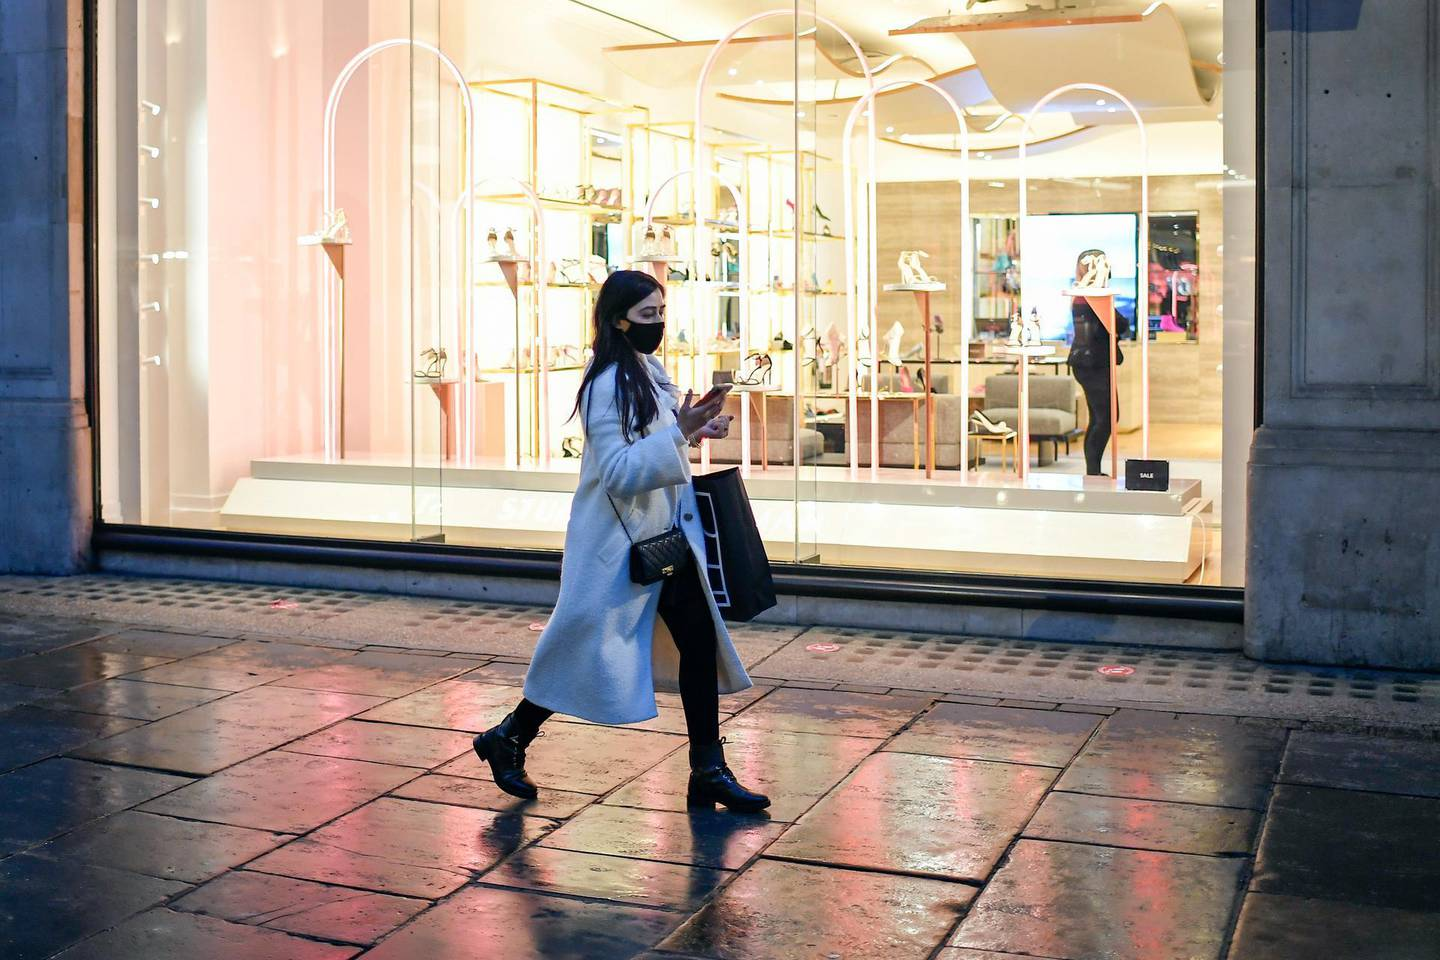 A woman wears a face mask as she walks in Regent Street, ahead of the new Tier-4 restriction measures, in London, Saturday, Dec. 19, 2020. Britain's Prime Minister Boris Johnson says Christmas gatherings cannot go ahead and non-essential shops must close in London and much of southern England as he imposed a new, higher level of coronavirus restrictions to curb rapidly spreading infections.(AP Photo/Alberto Pezzali)